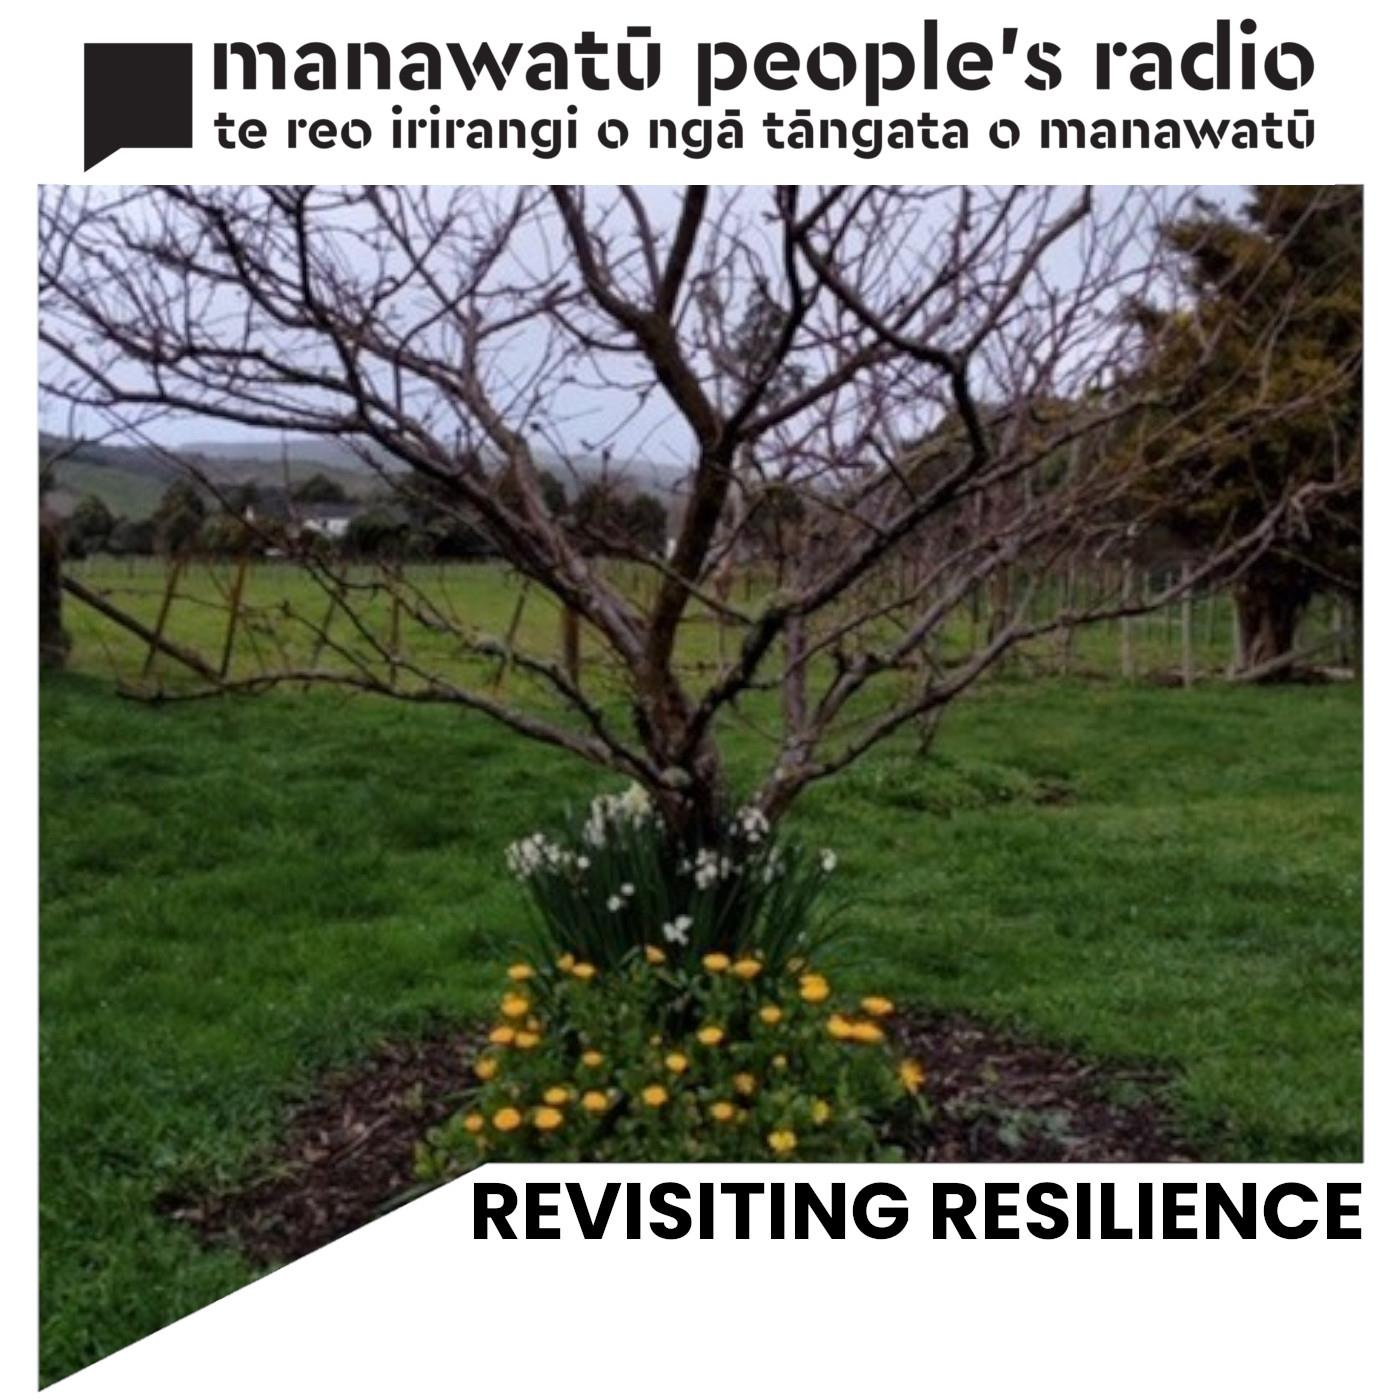 Revisiting Resilience